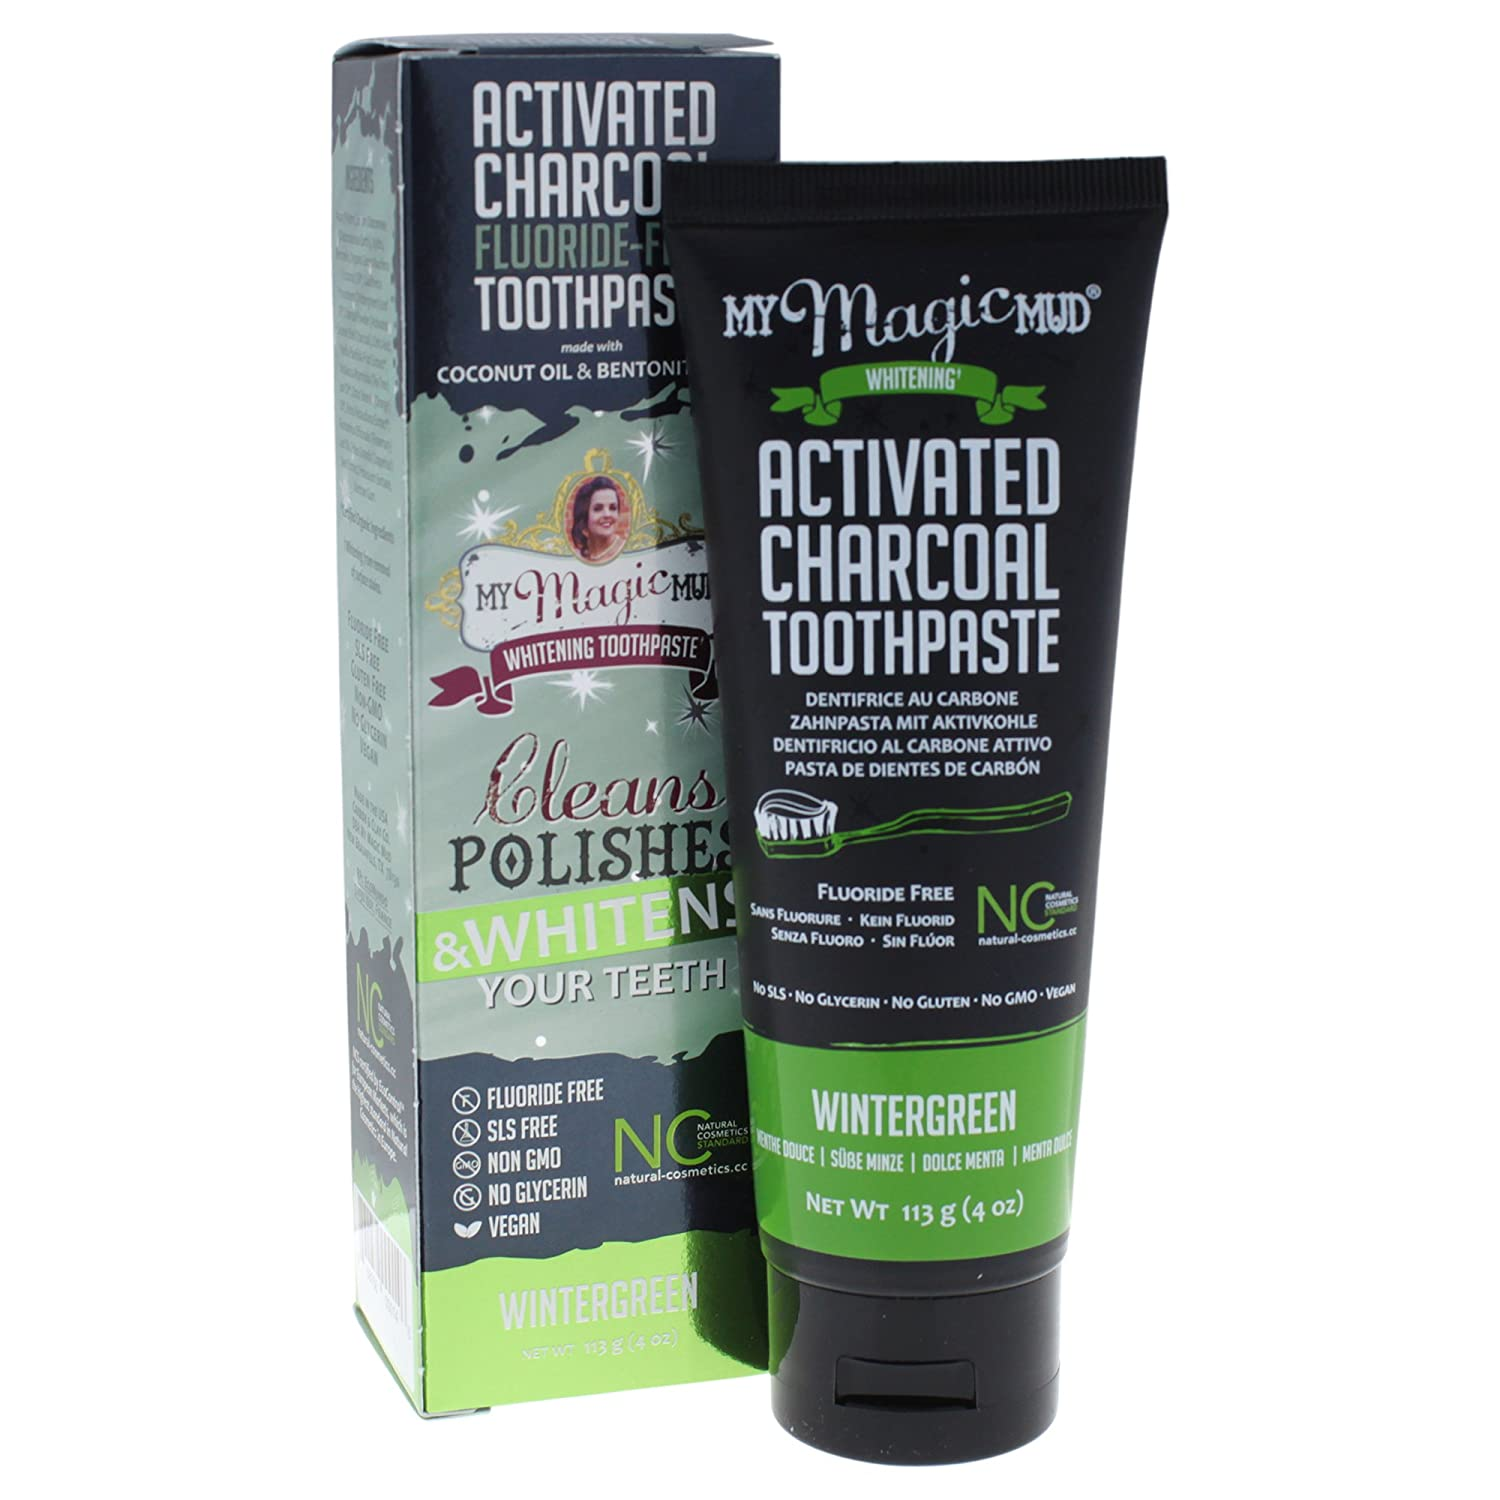 My Magic Mud Activated Charcoal Toothpaste for Whitening, Deep Cleaning, Polishing, Detoxifying, Brighter Teeth, Reduces Sensitivity, All Natural Oral Care, Non-GMO, Wintergreen, 4 oz. 868656000146